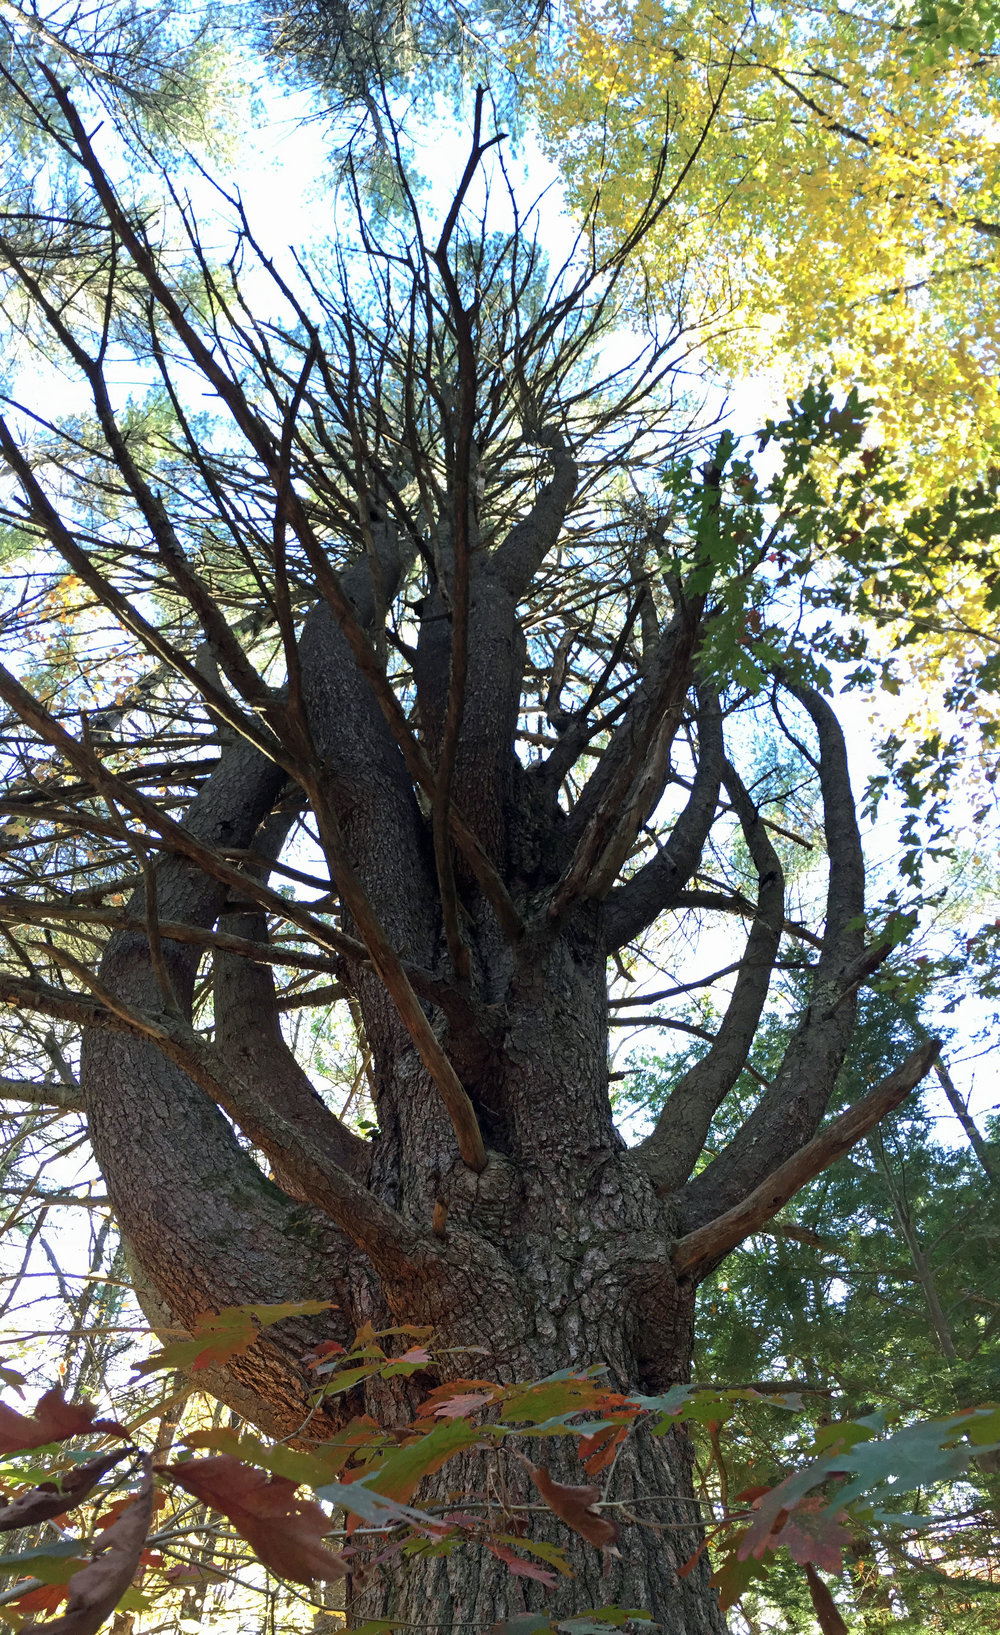 Click here for more information about this mammoth pine tree on the trail between Joppa Hill Farm and Pulpit Rock -